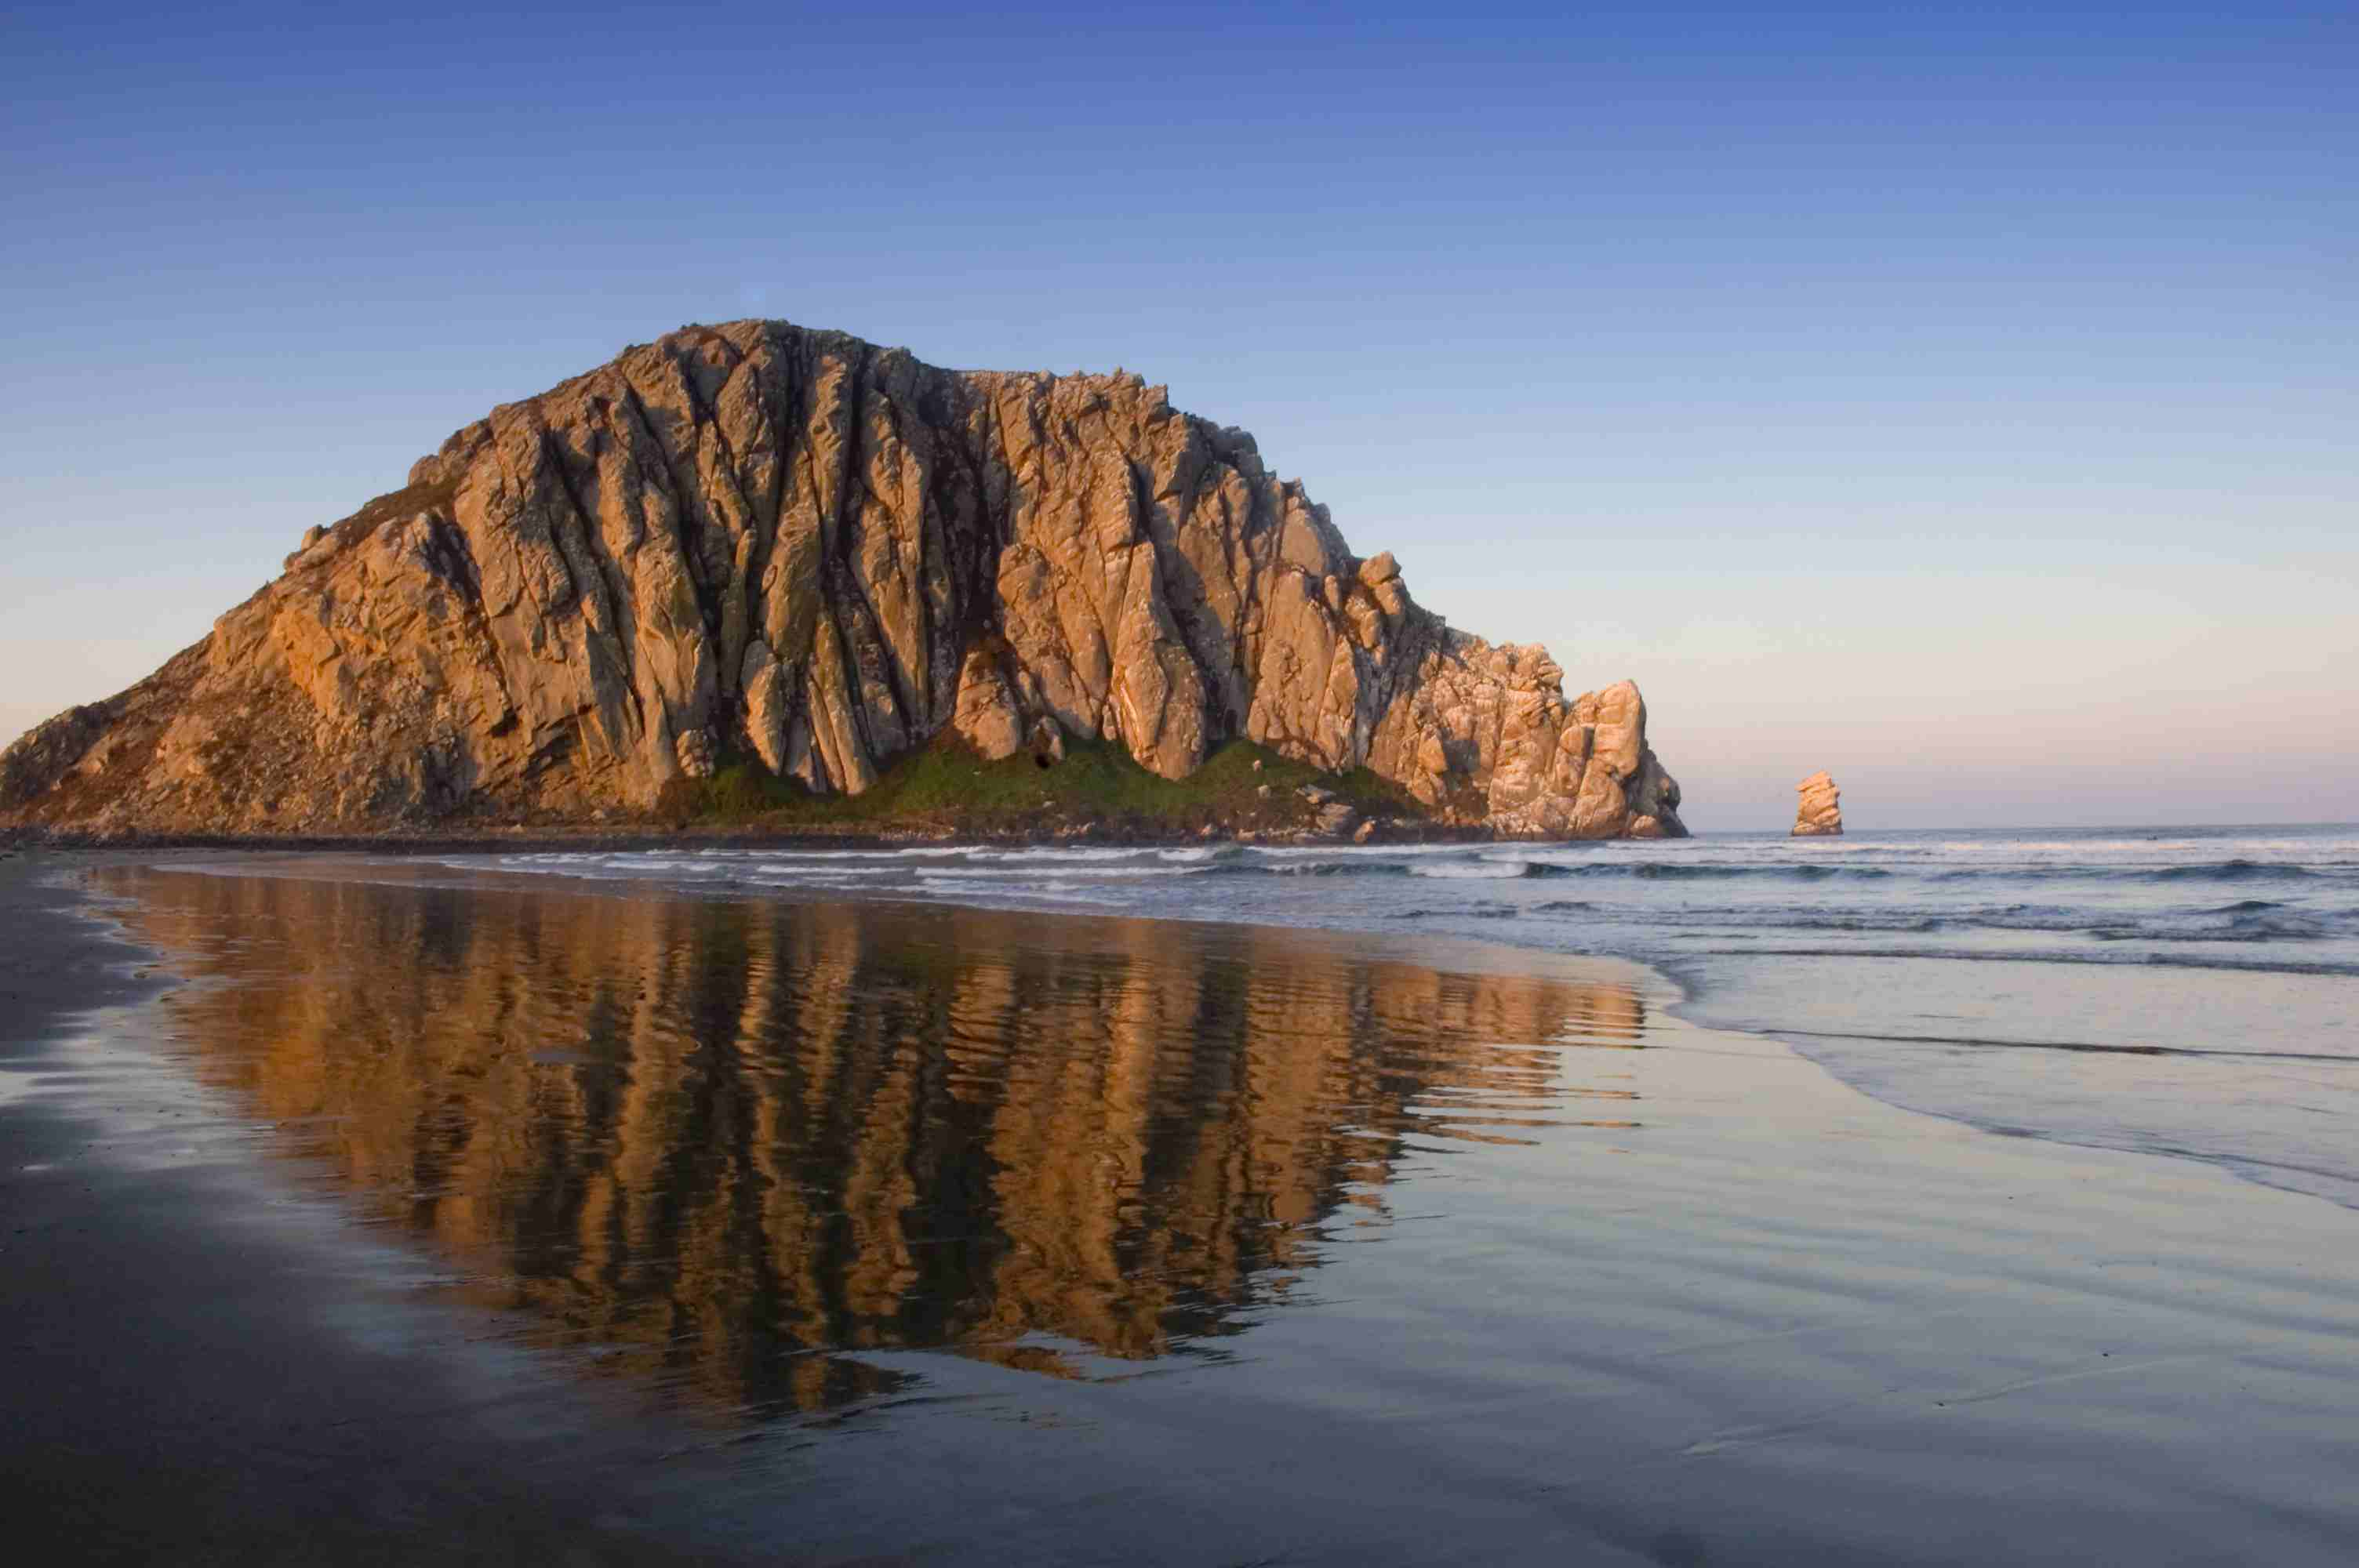 Morro Rock at sunset, reflected in the water